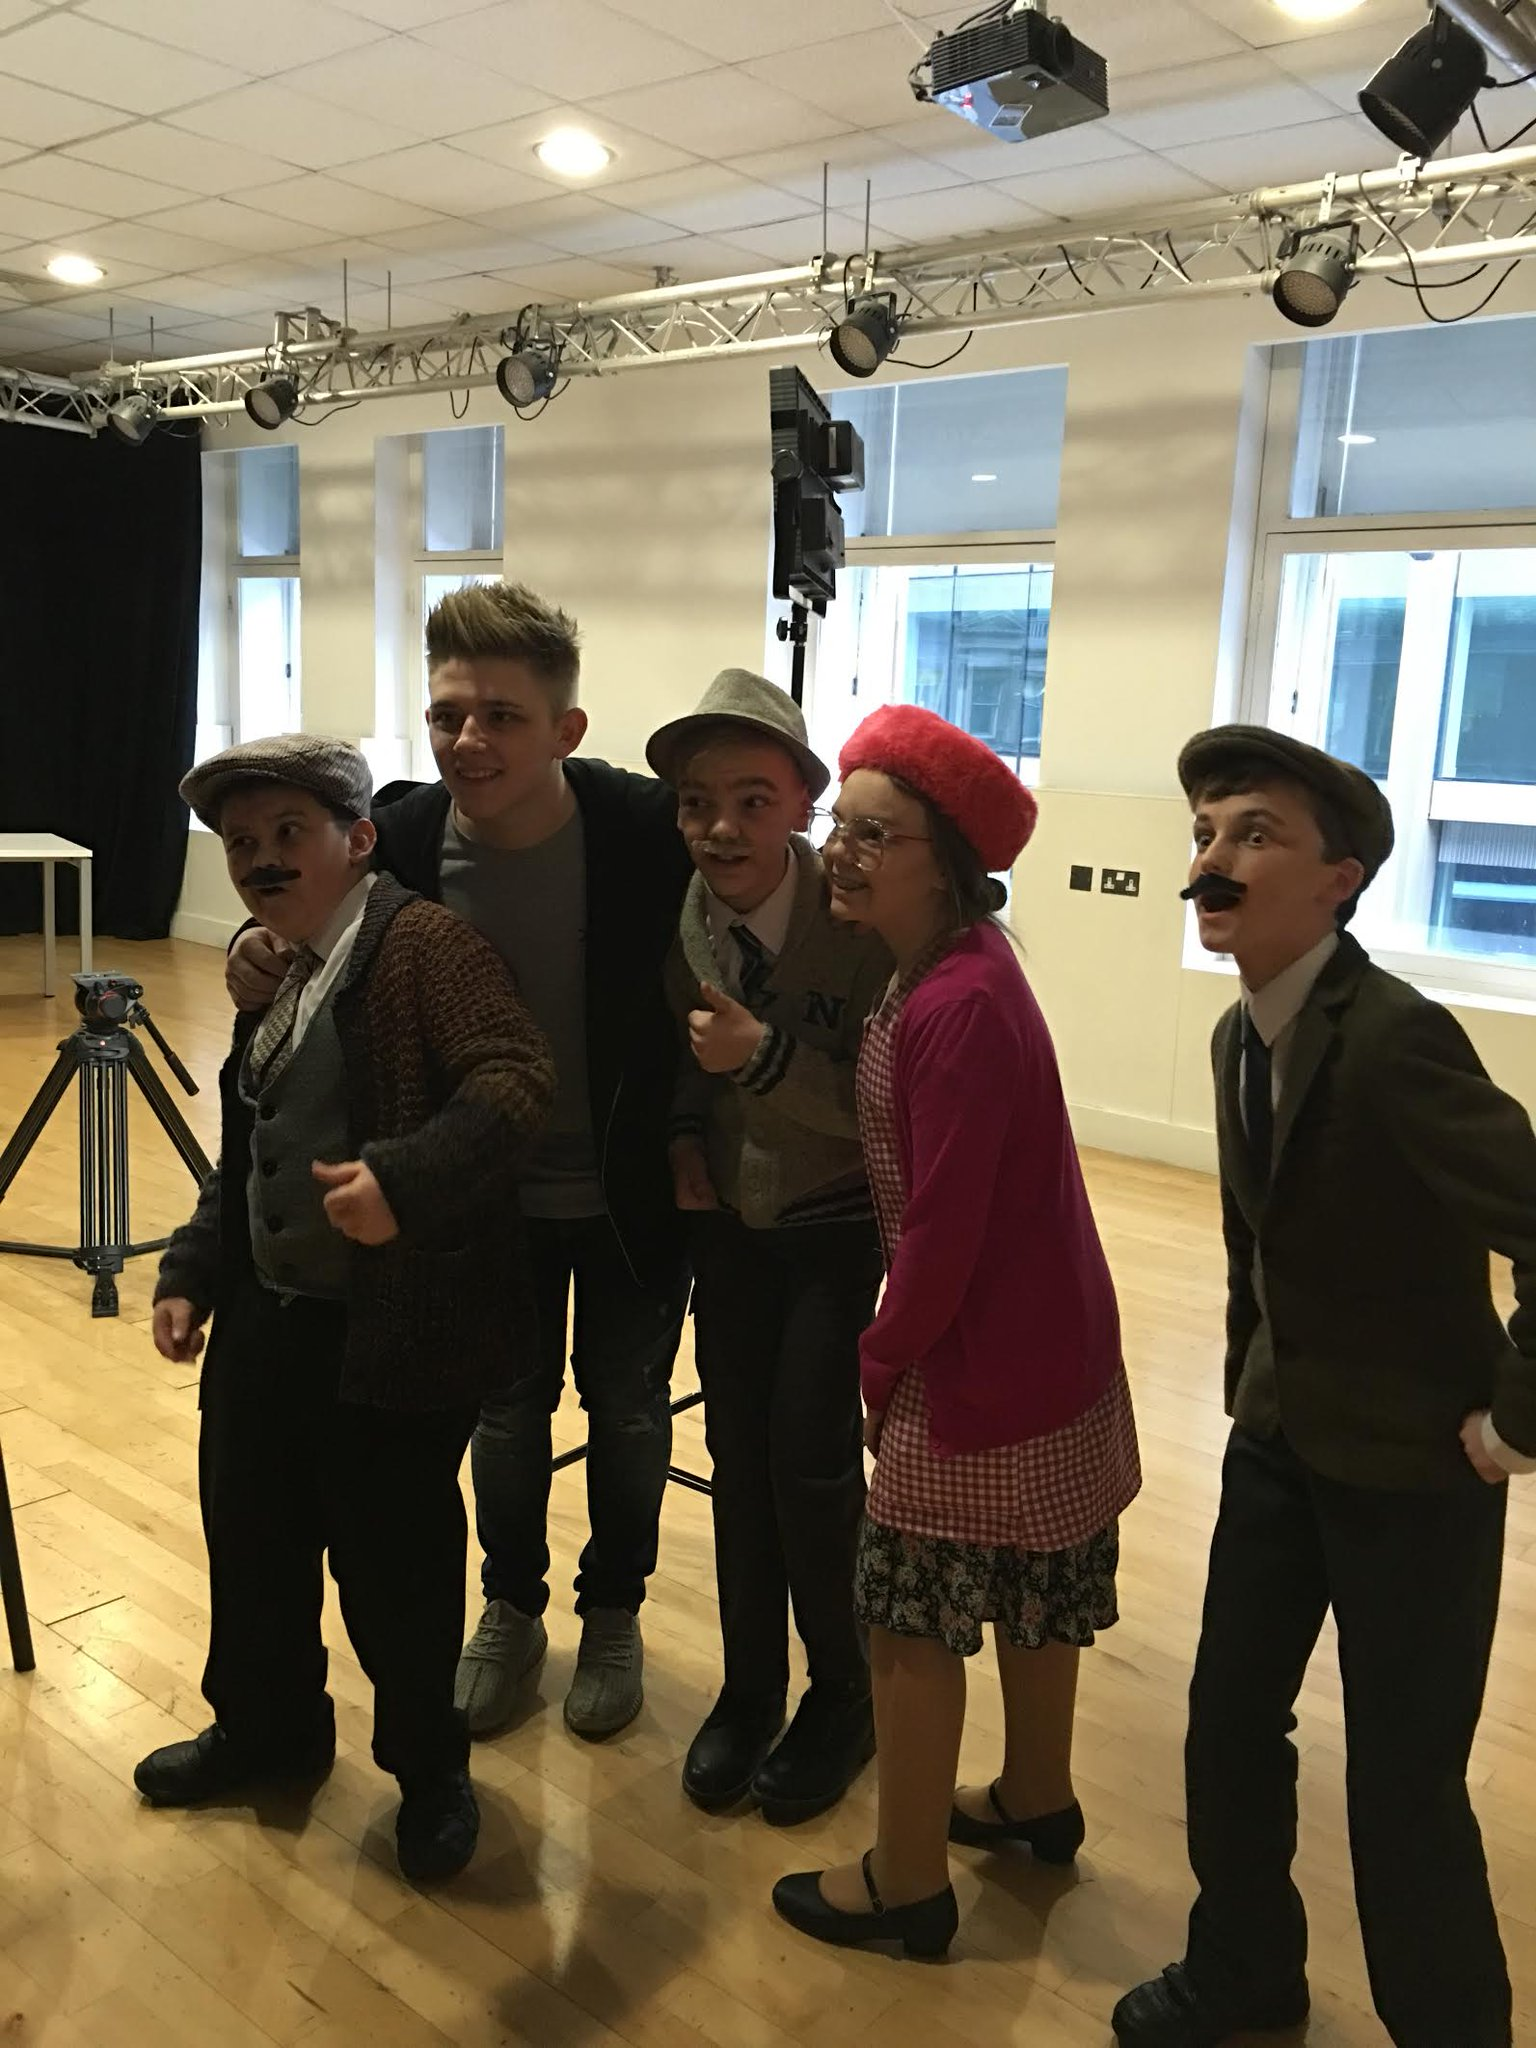 RT @UKTheatreSchool: Crackin' day filming with this brilliant guy +our Wee Still Gamers! Thanks @nickymcdonald1 Ur an absolute star! https:…